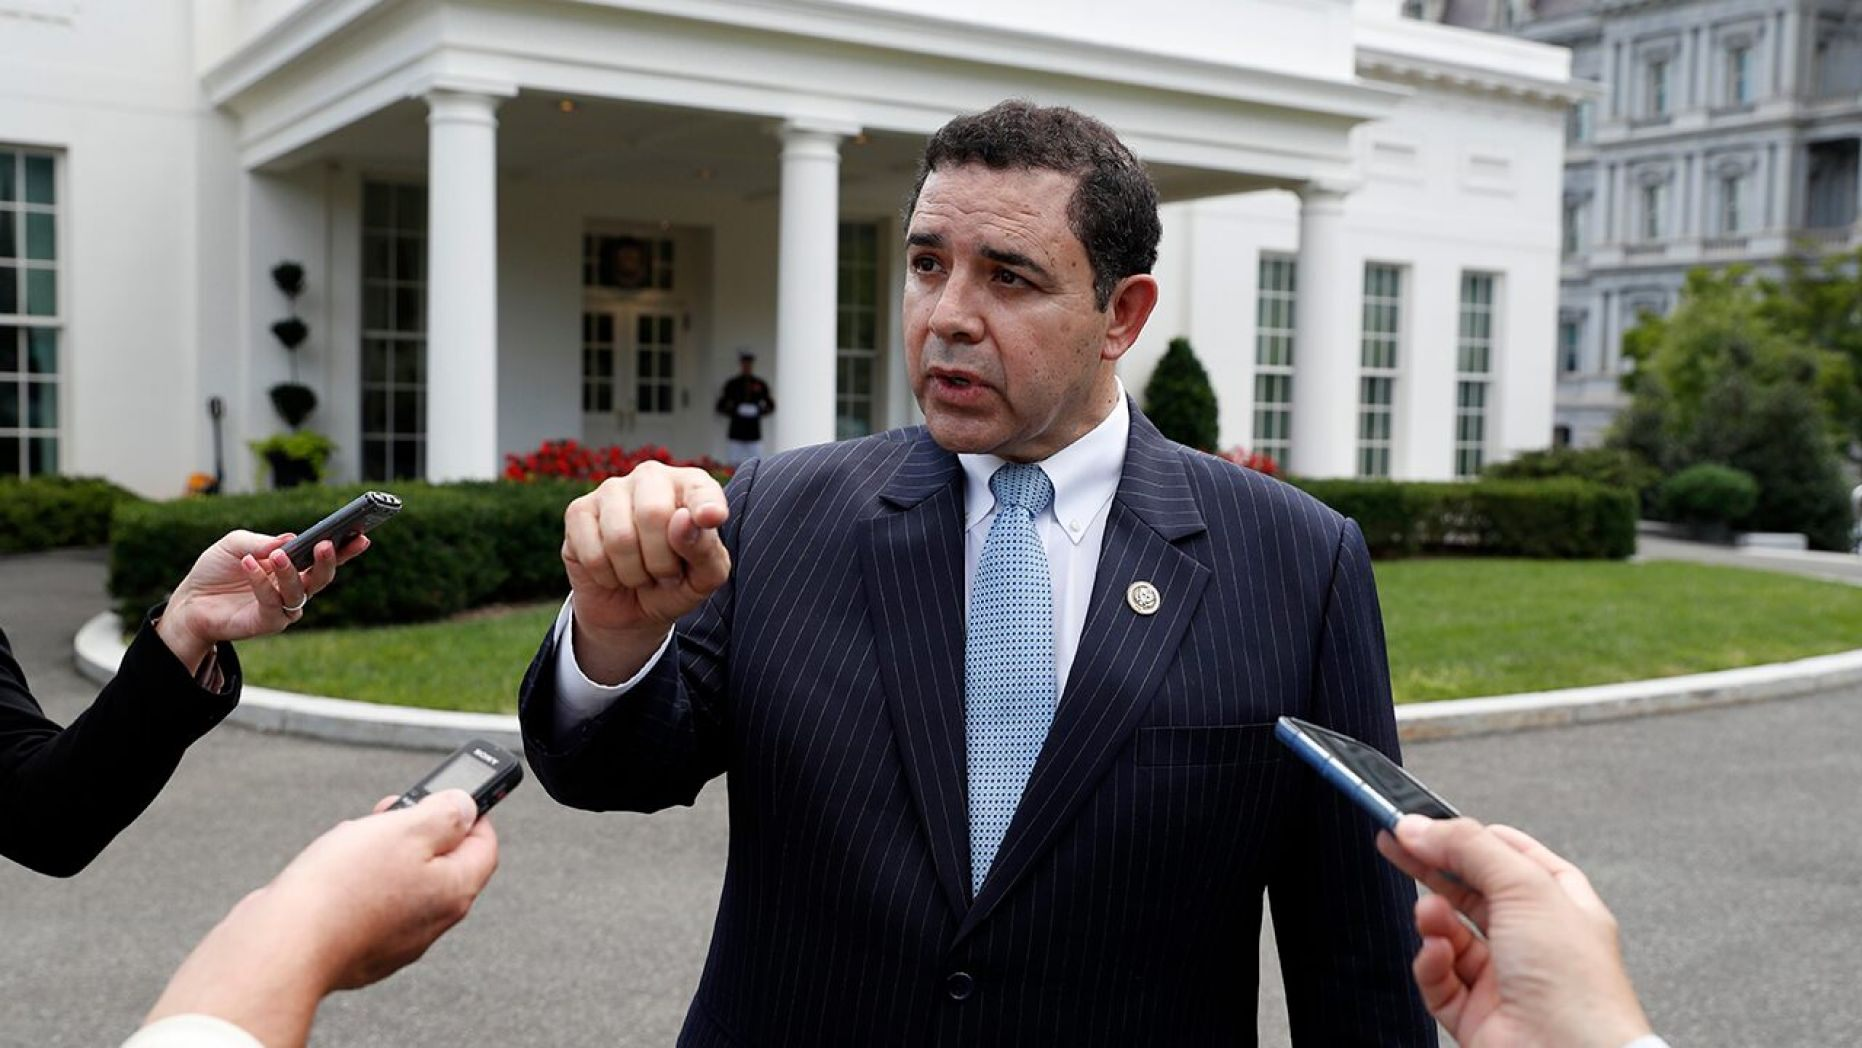 Rep. Henry Cuellar, D-Texas, speaks with the media in front of the West Wing after a bipartisan meeting with President Donald Trump at the White House, Wednesday, Sept. 13, 2017, in Washington.